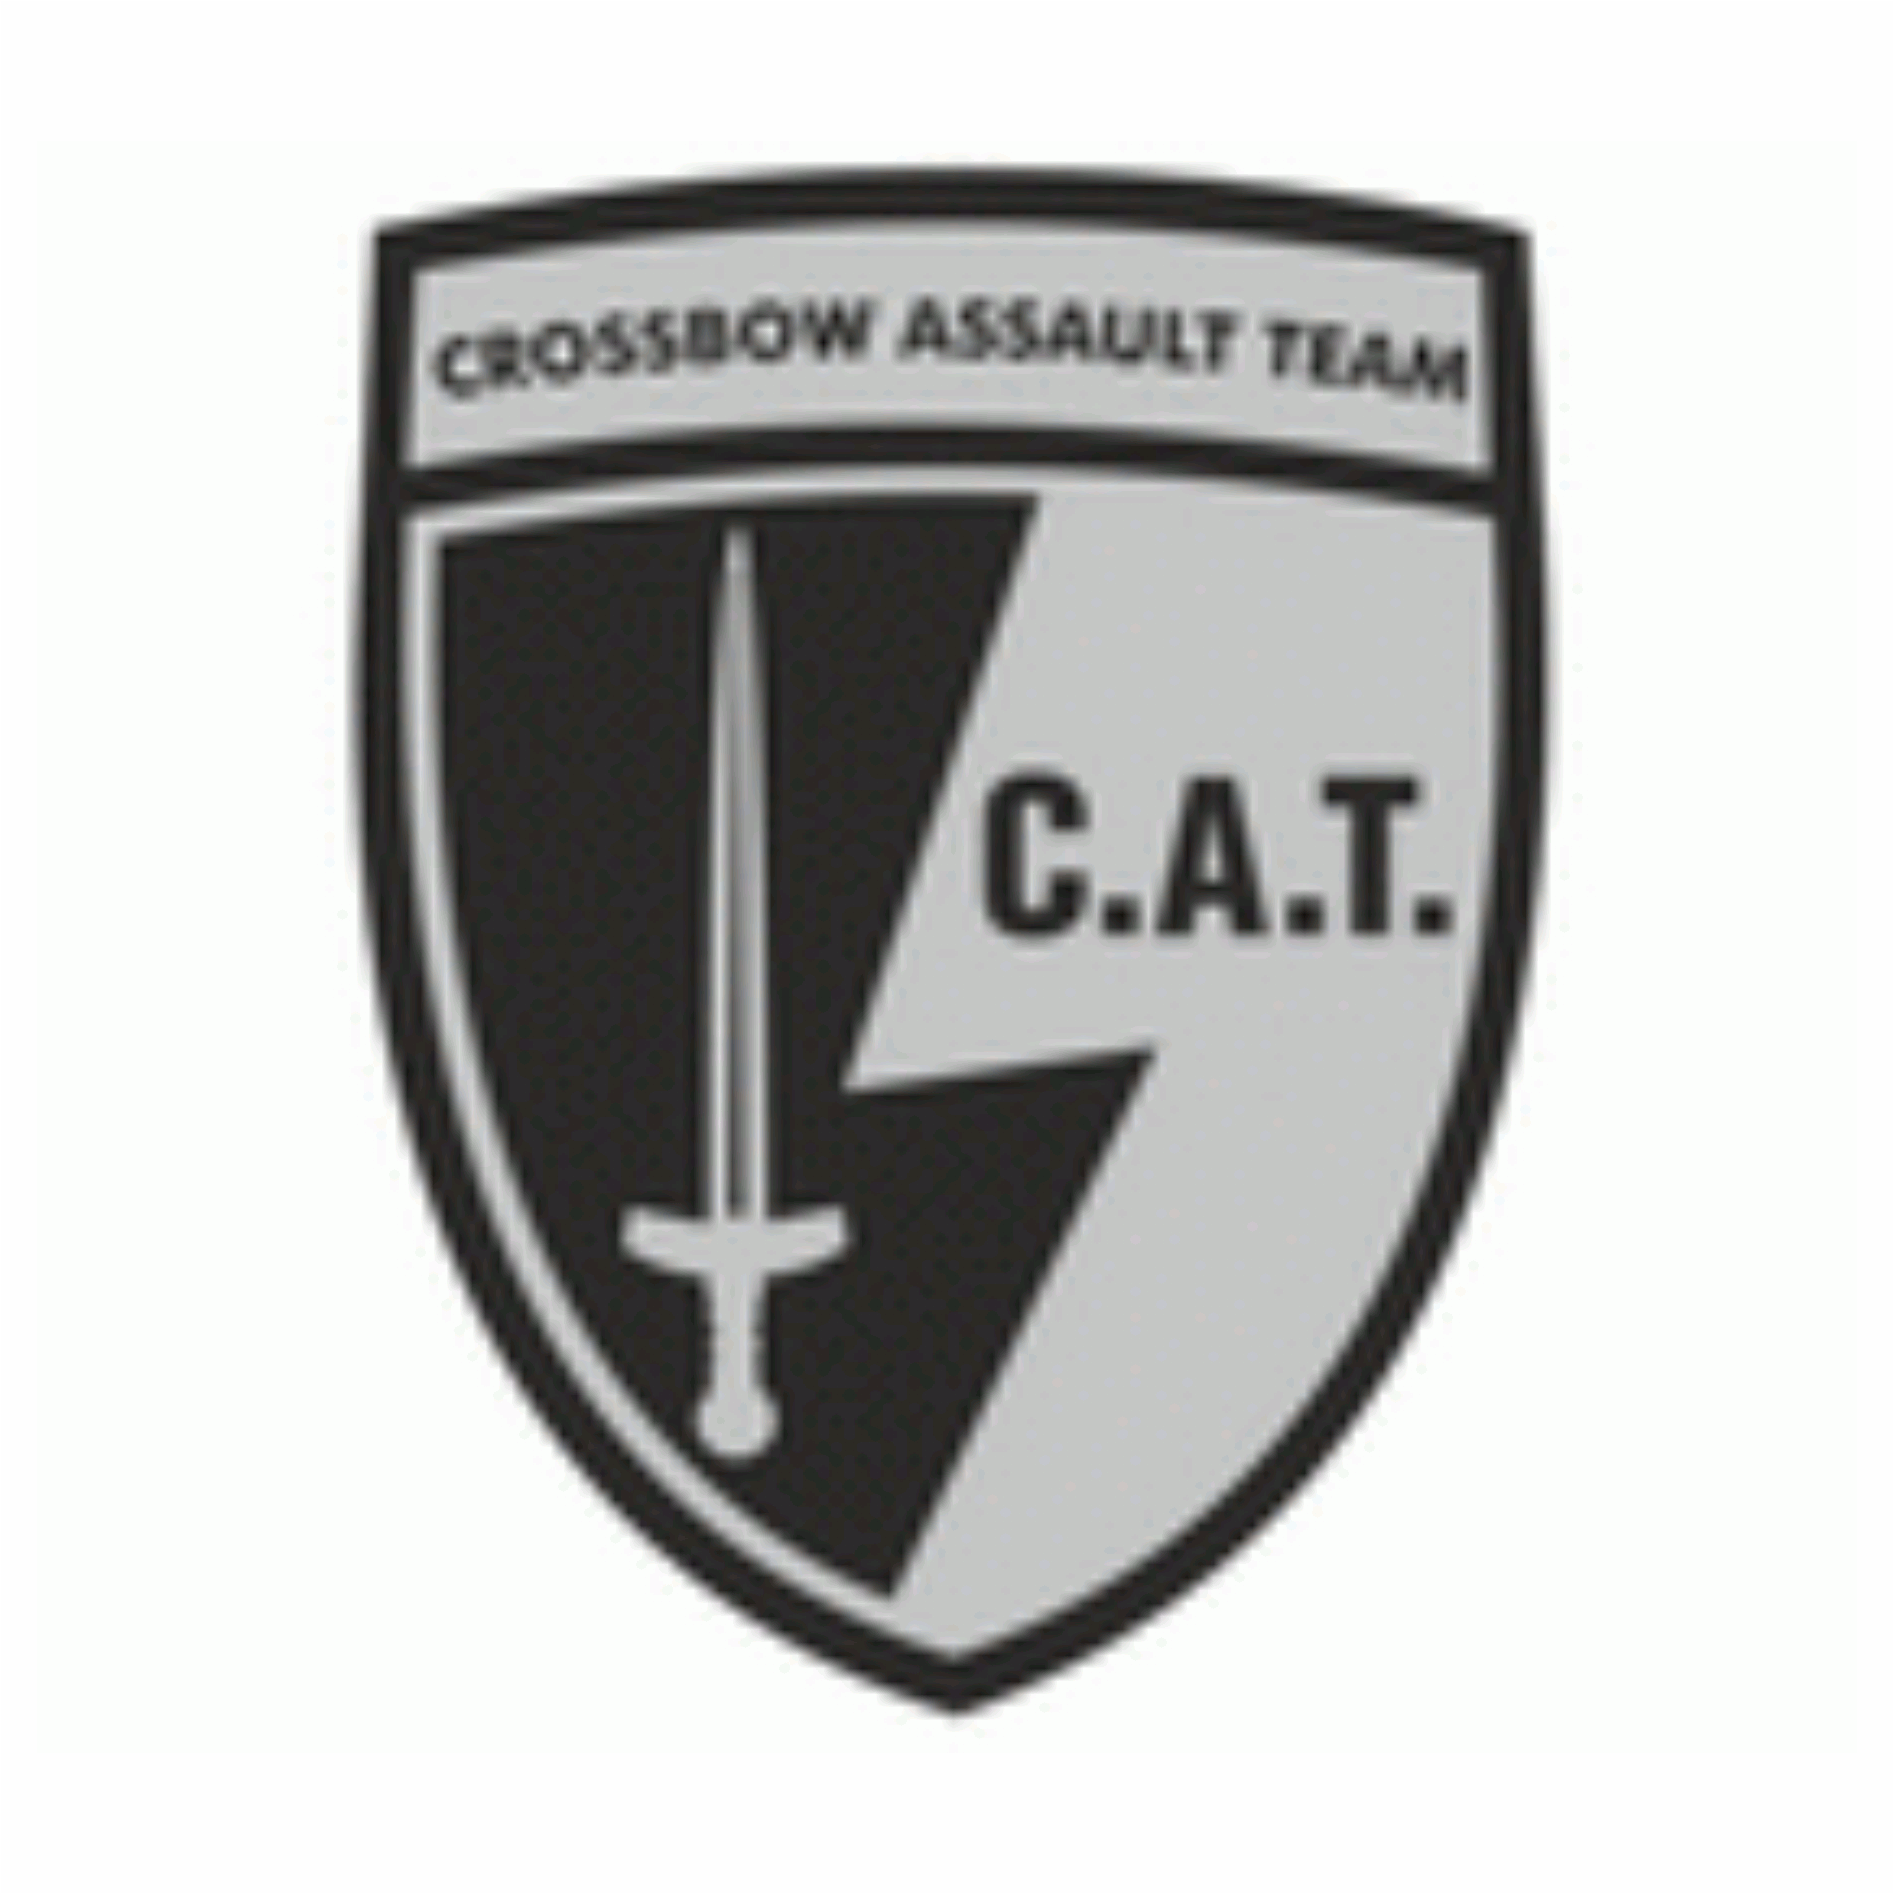 CROSSBOW ASSAULT TEAM